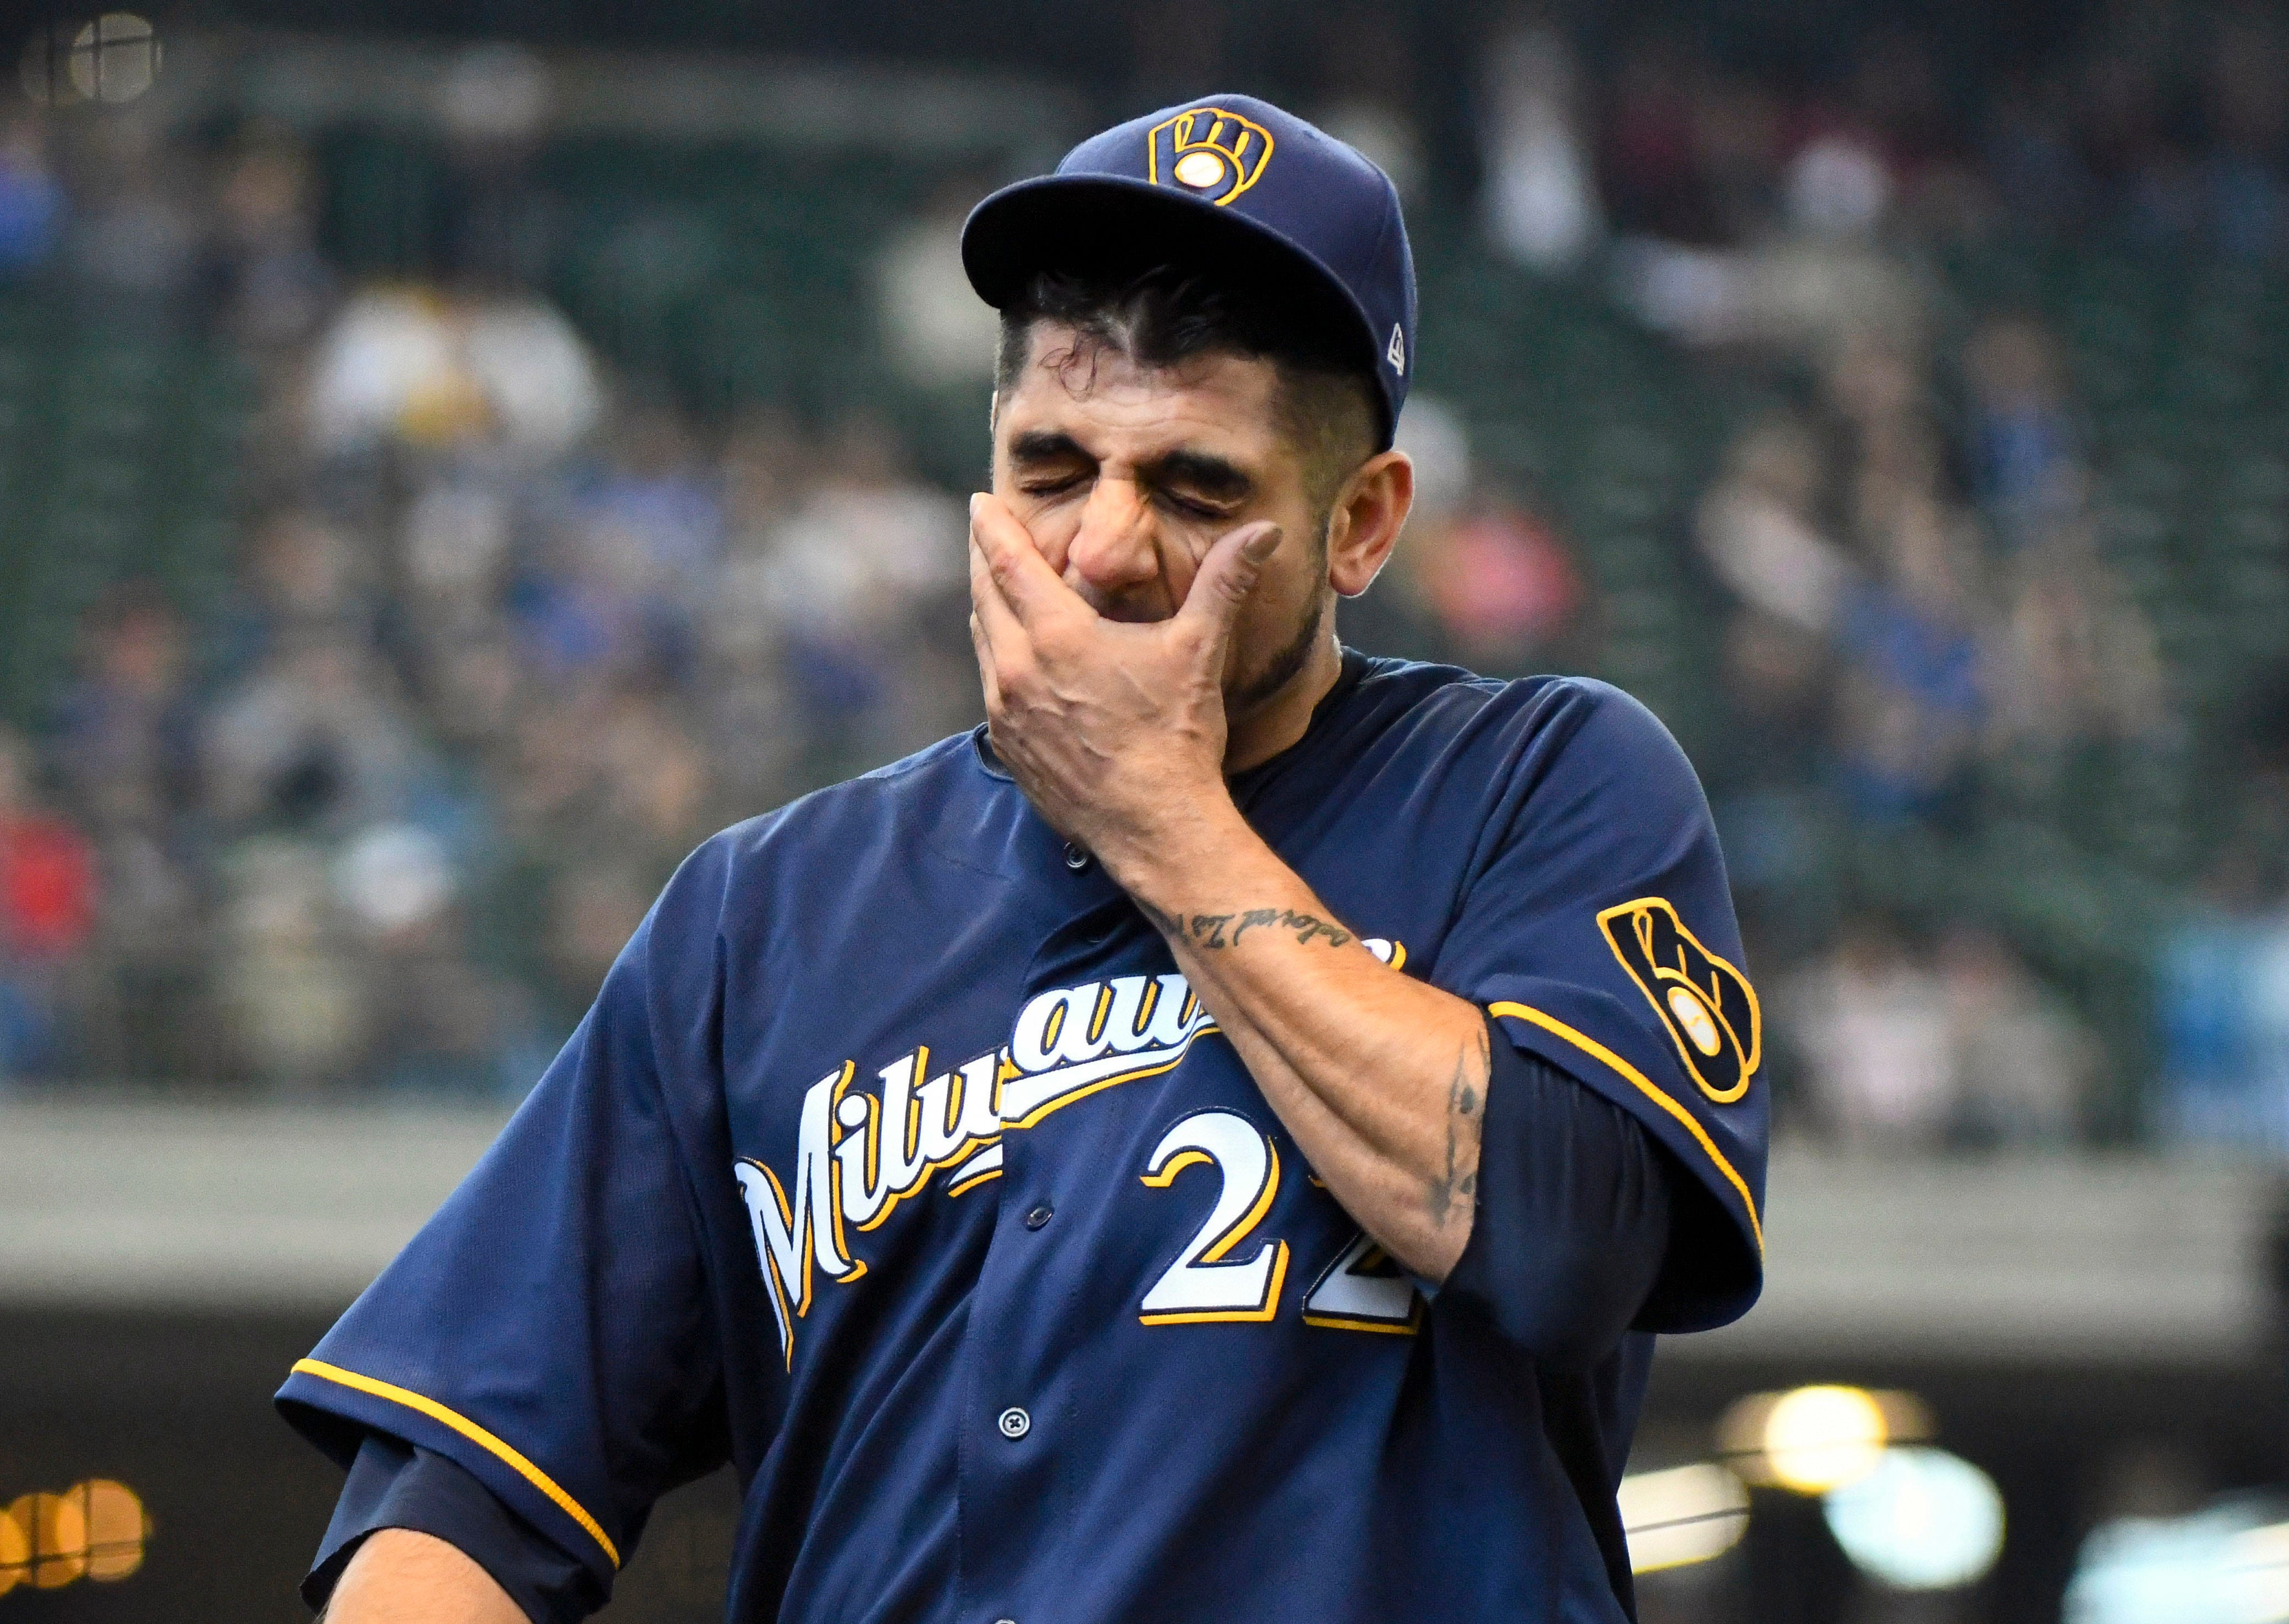 Blue Jays 8, Brewers 4: Toronto uses long-ball barrage to sweep two-game series